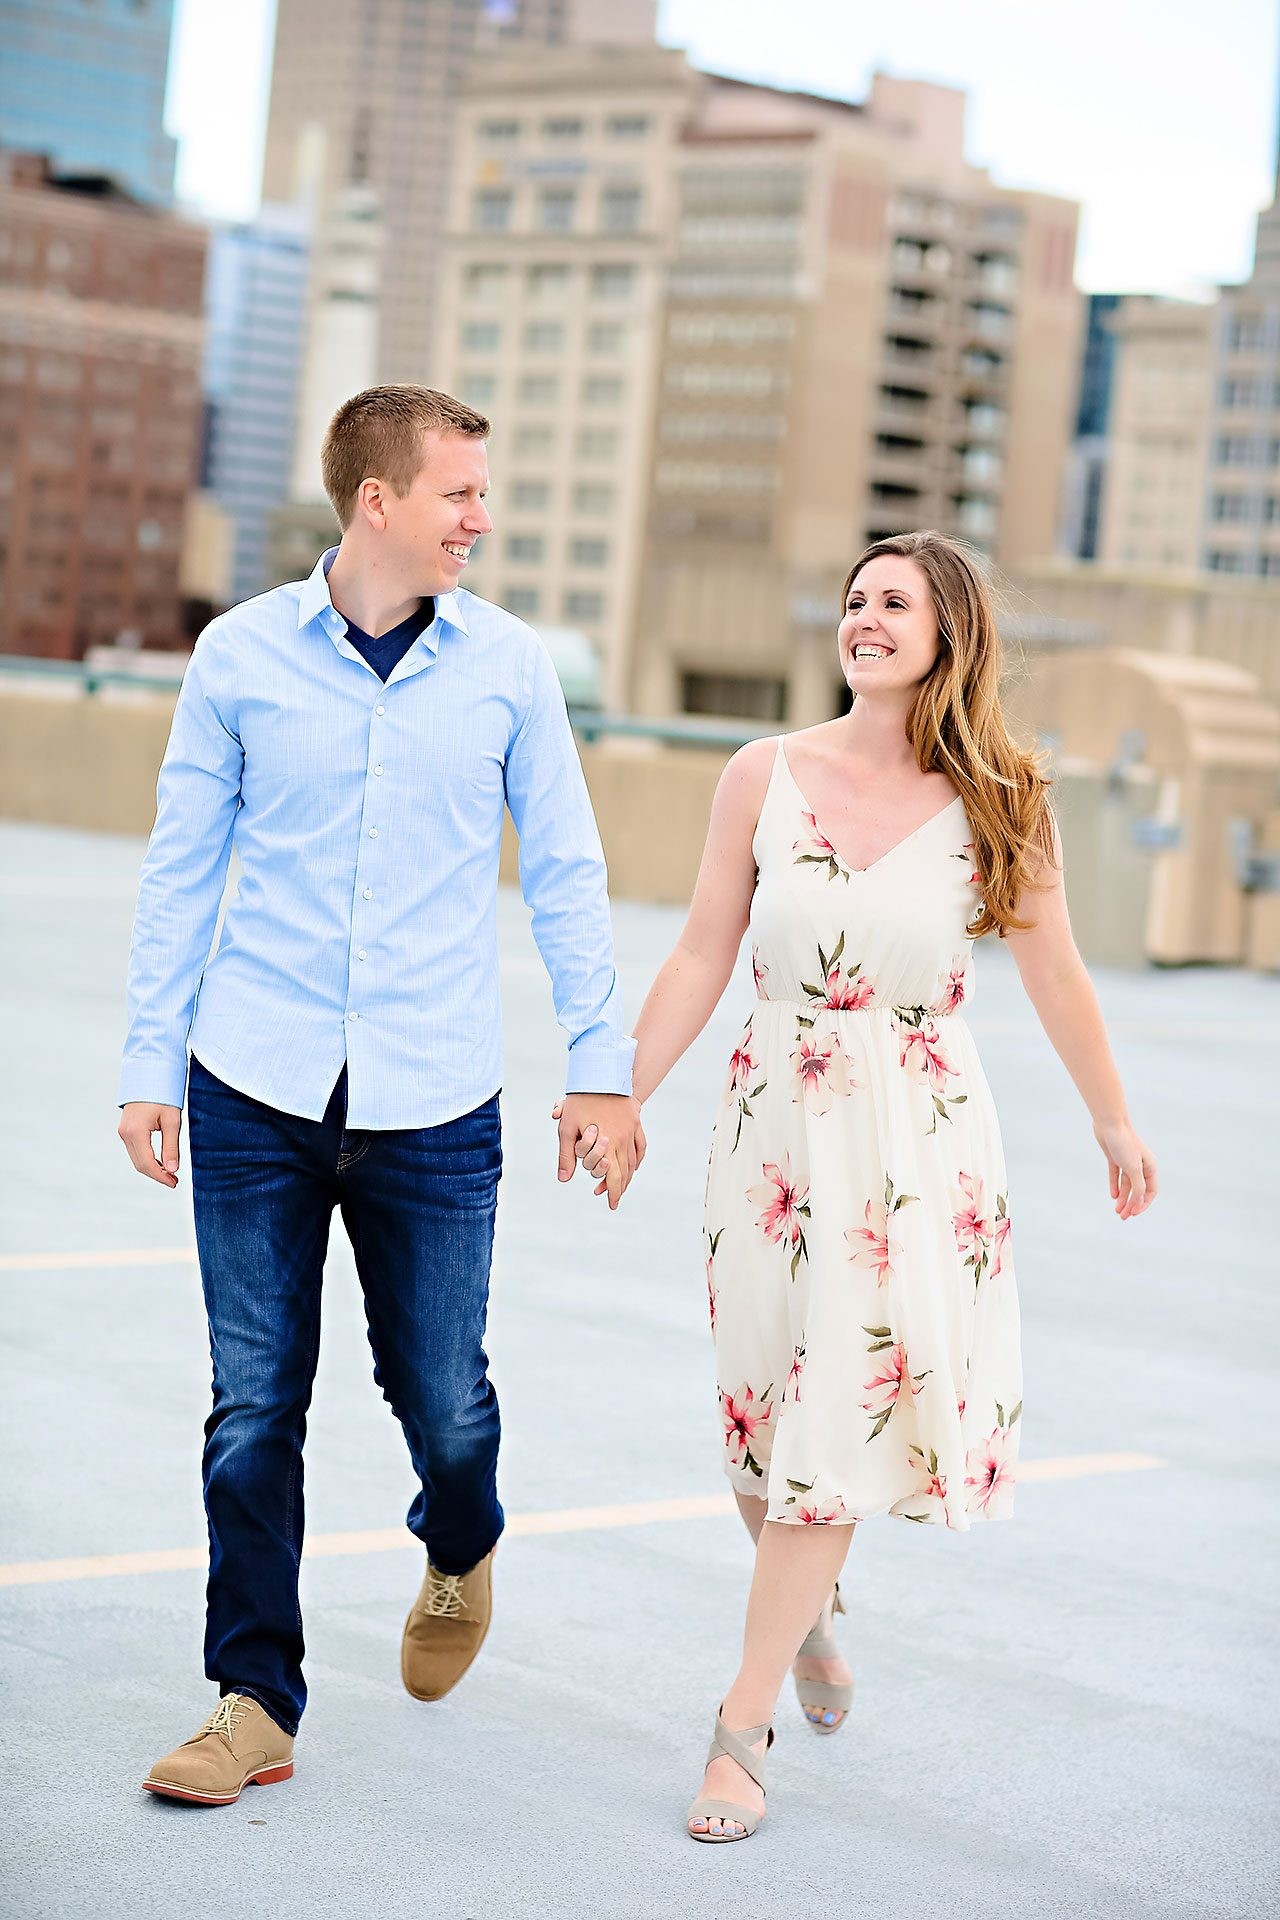 Chelsea Jeff Downtown Indy Engagement Session 143